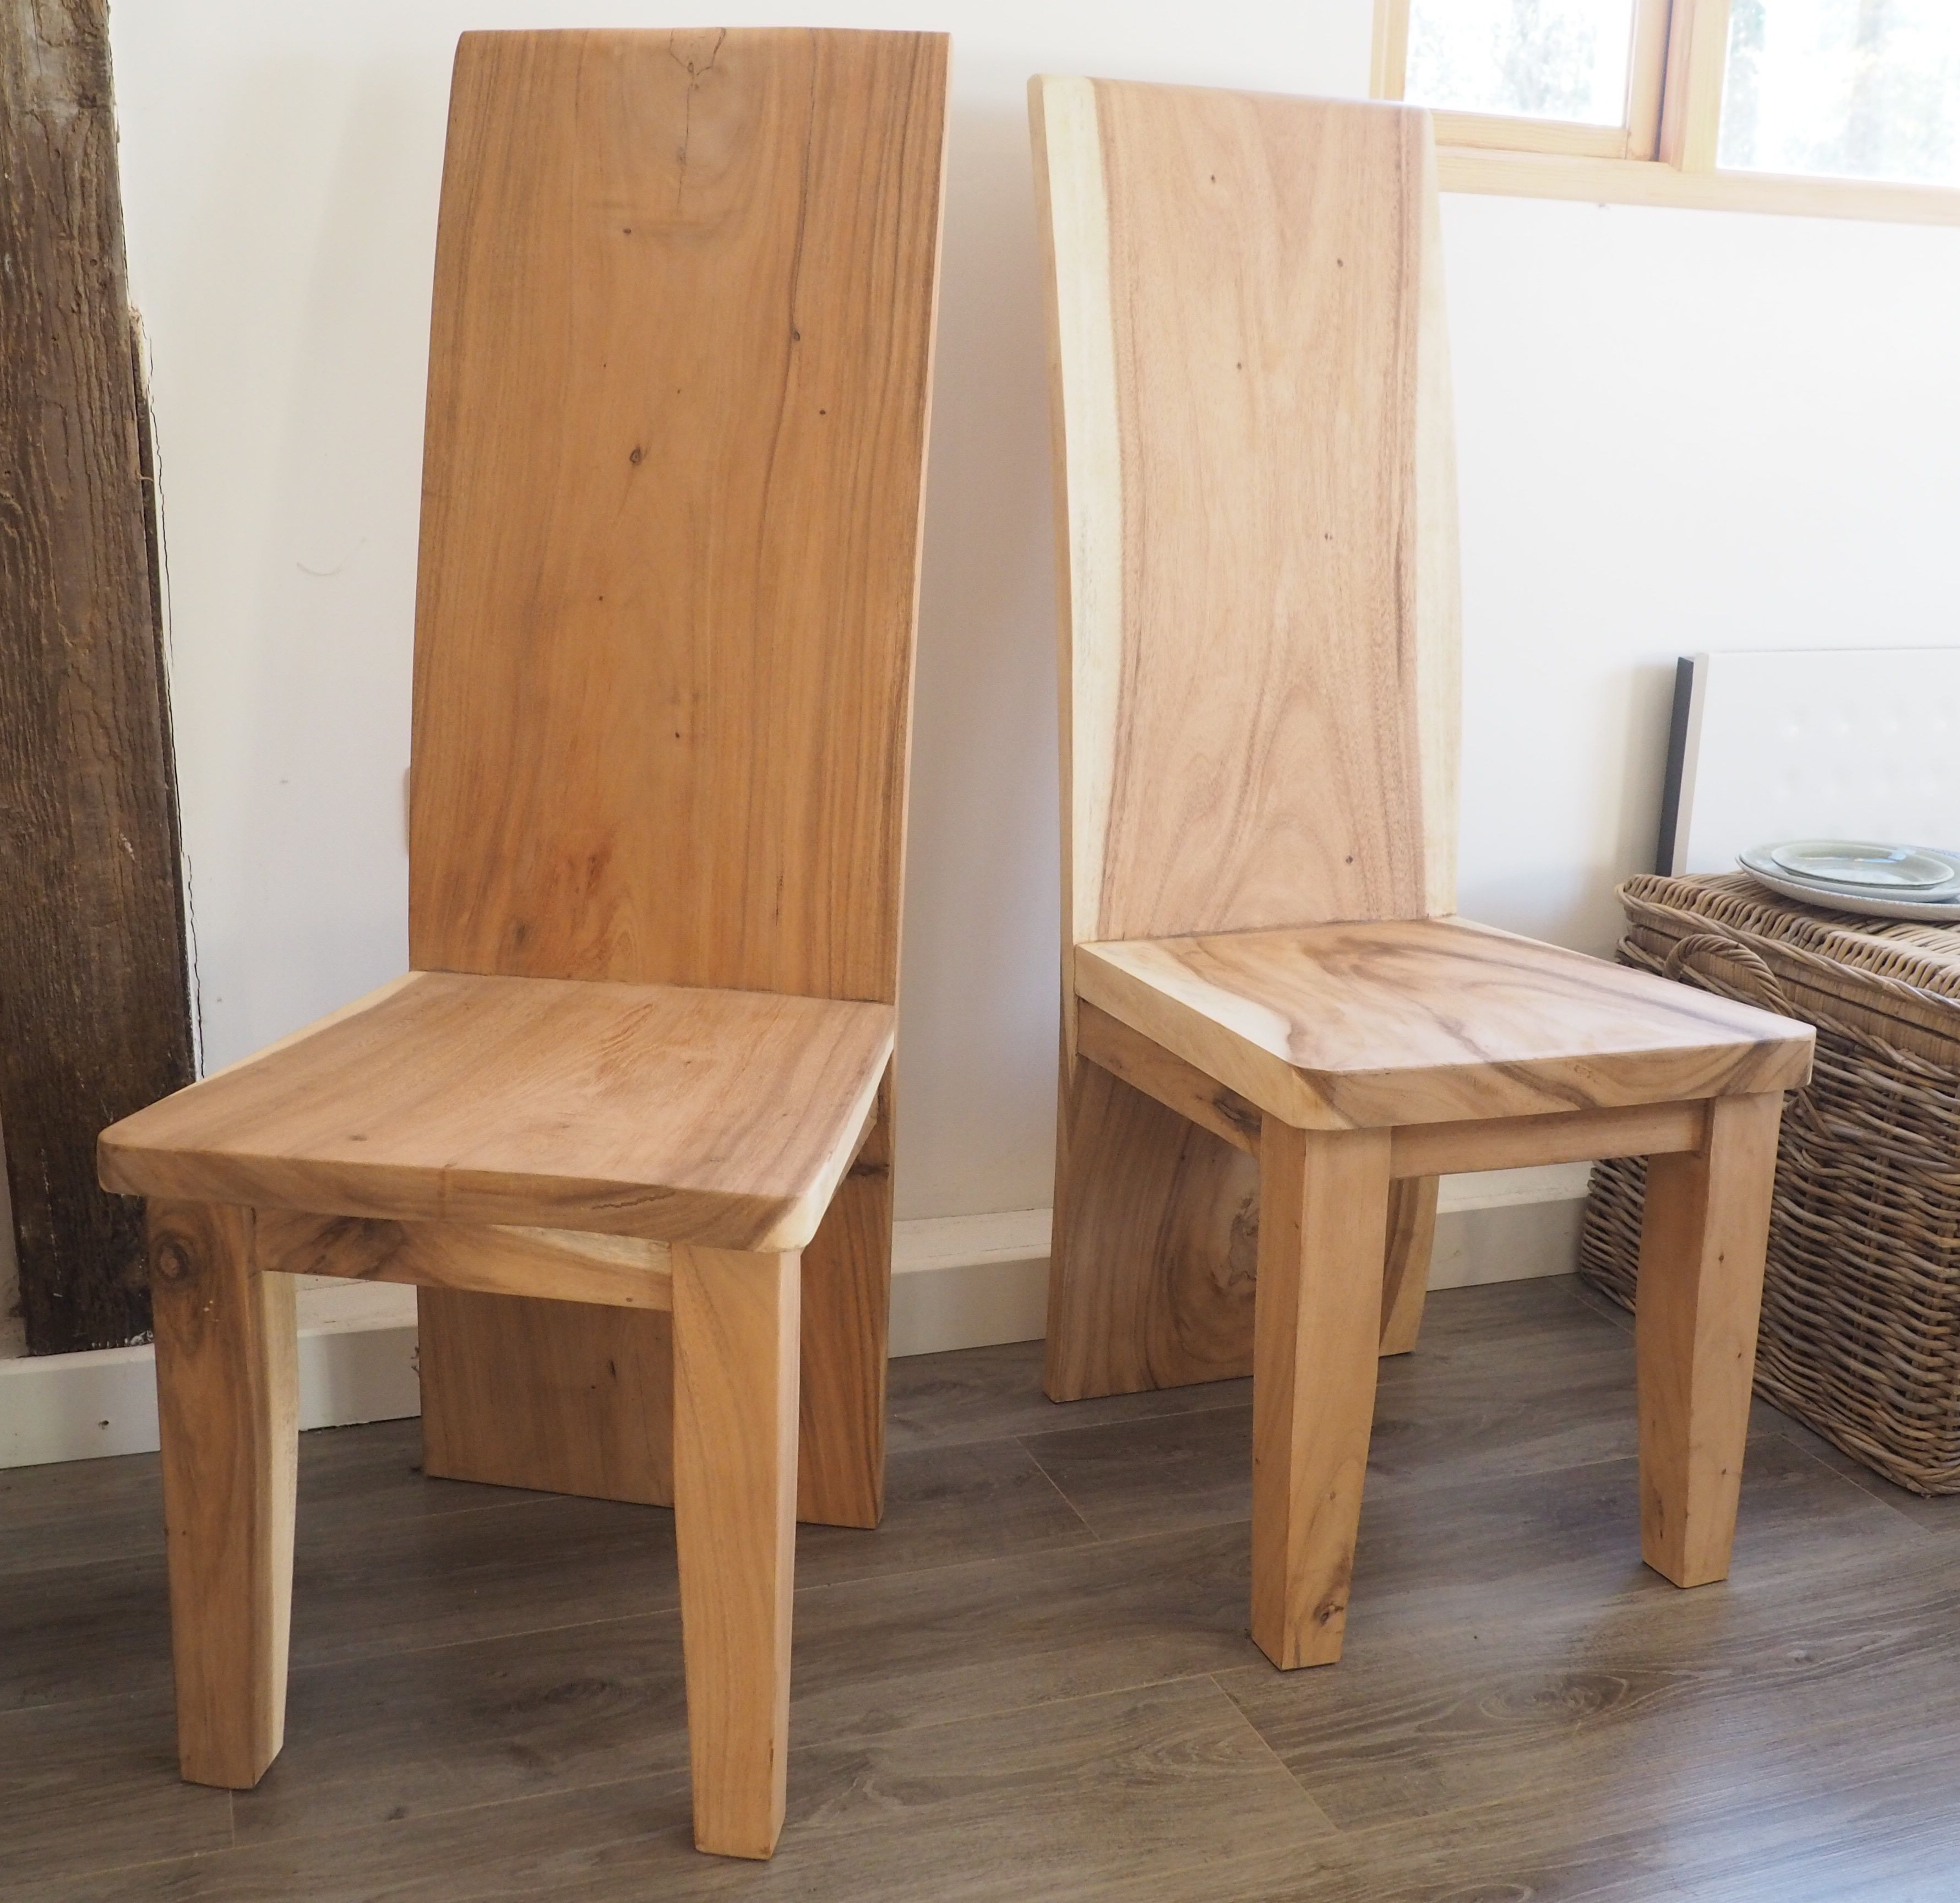 These Simply Stunning Natural Wood Dining Chairs Have A